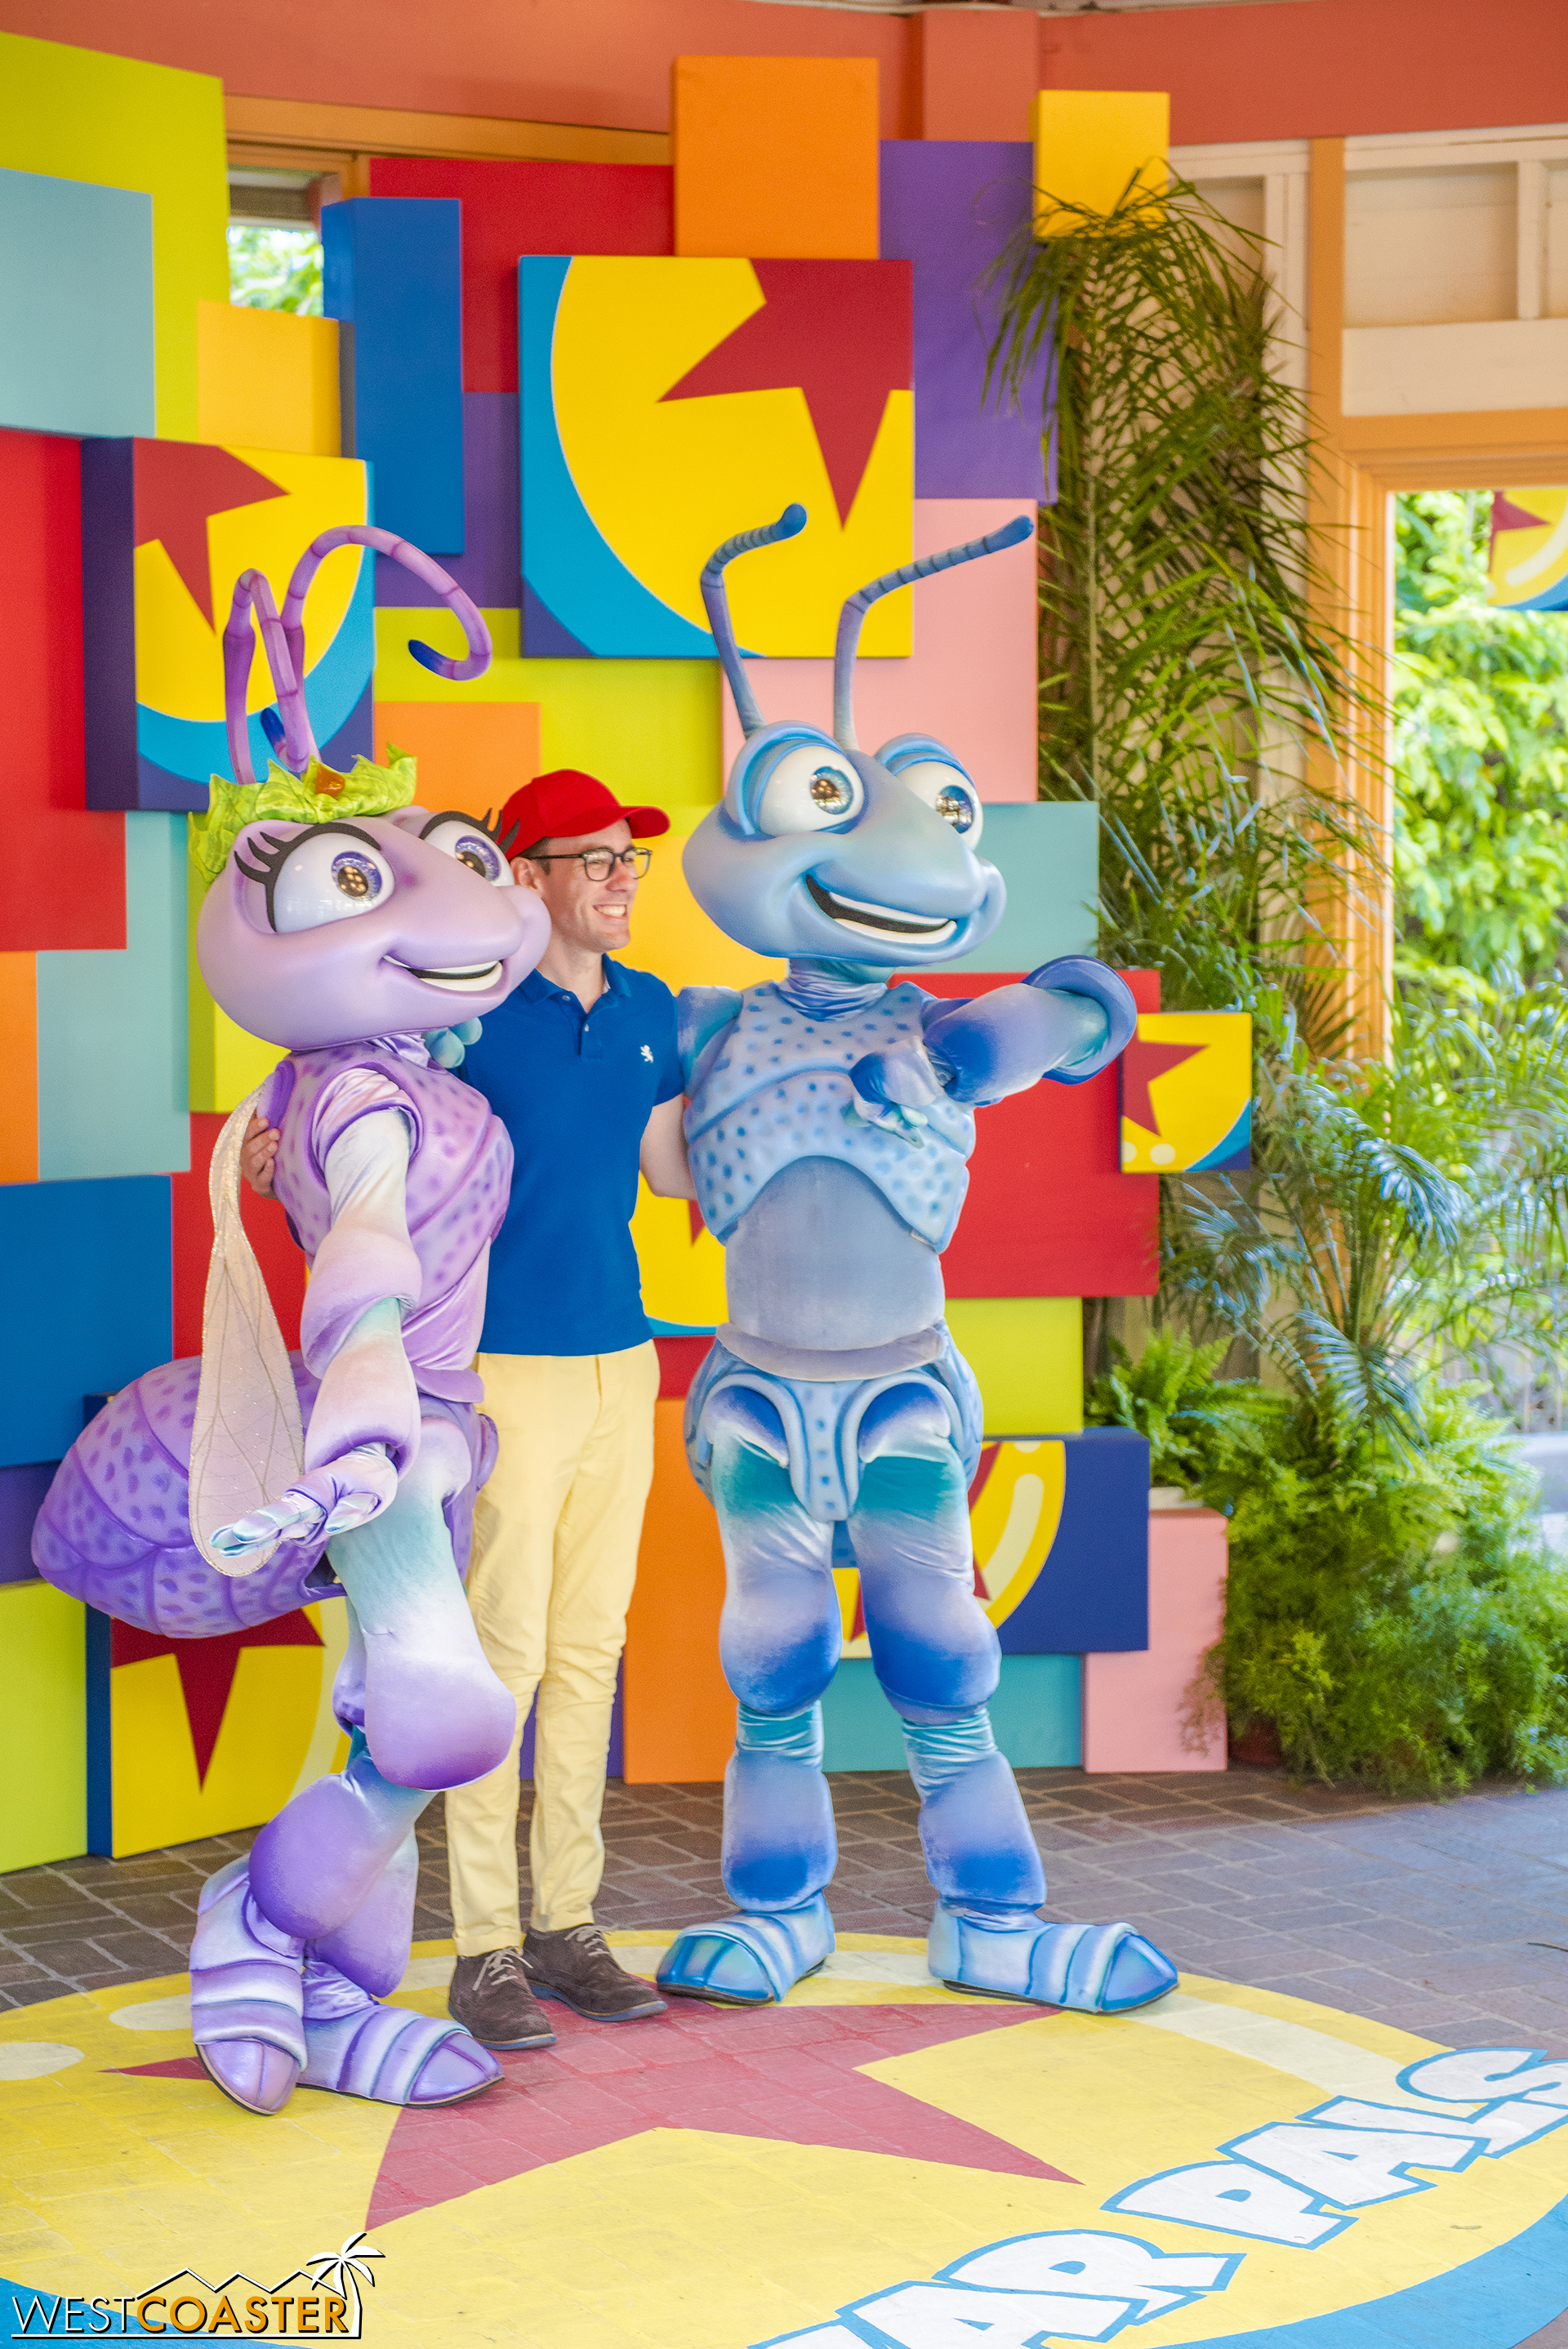 Guests can take their picture with different Pixar characters depending on the day and time.